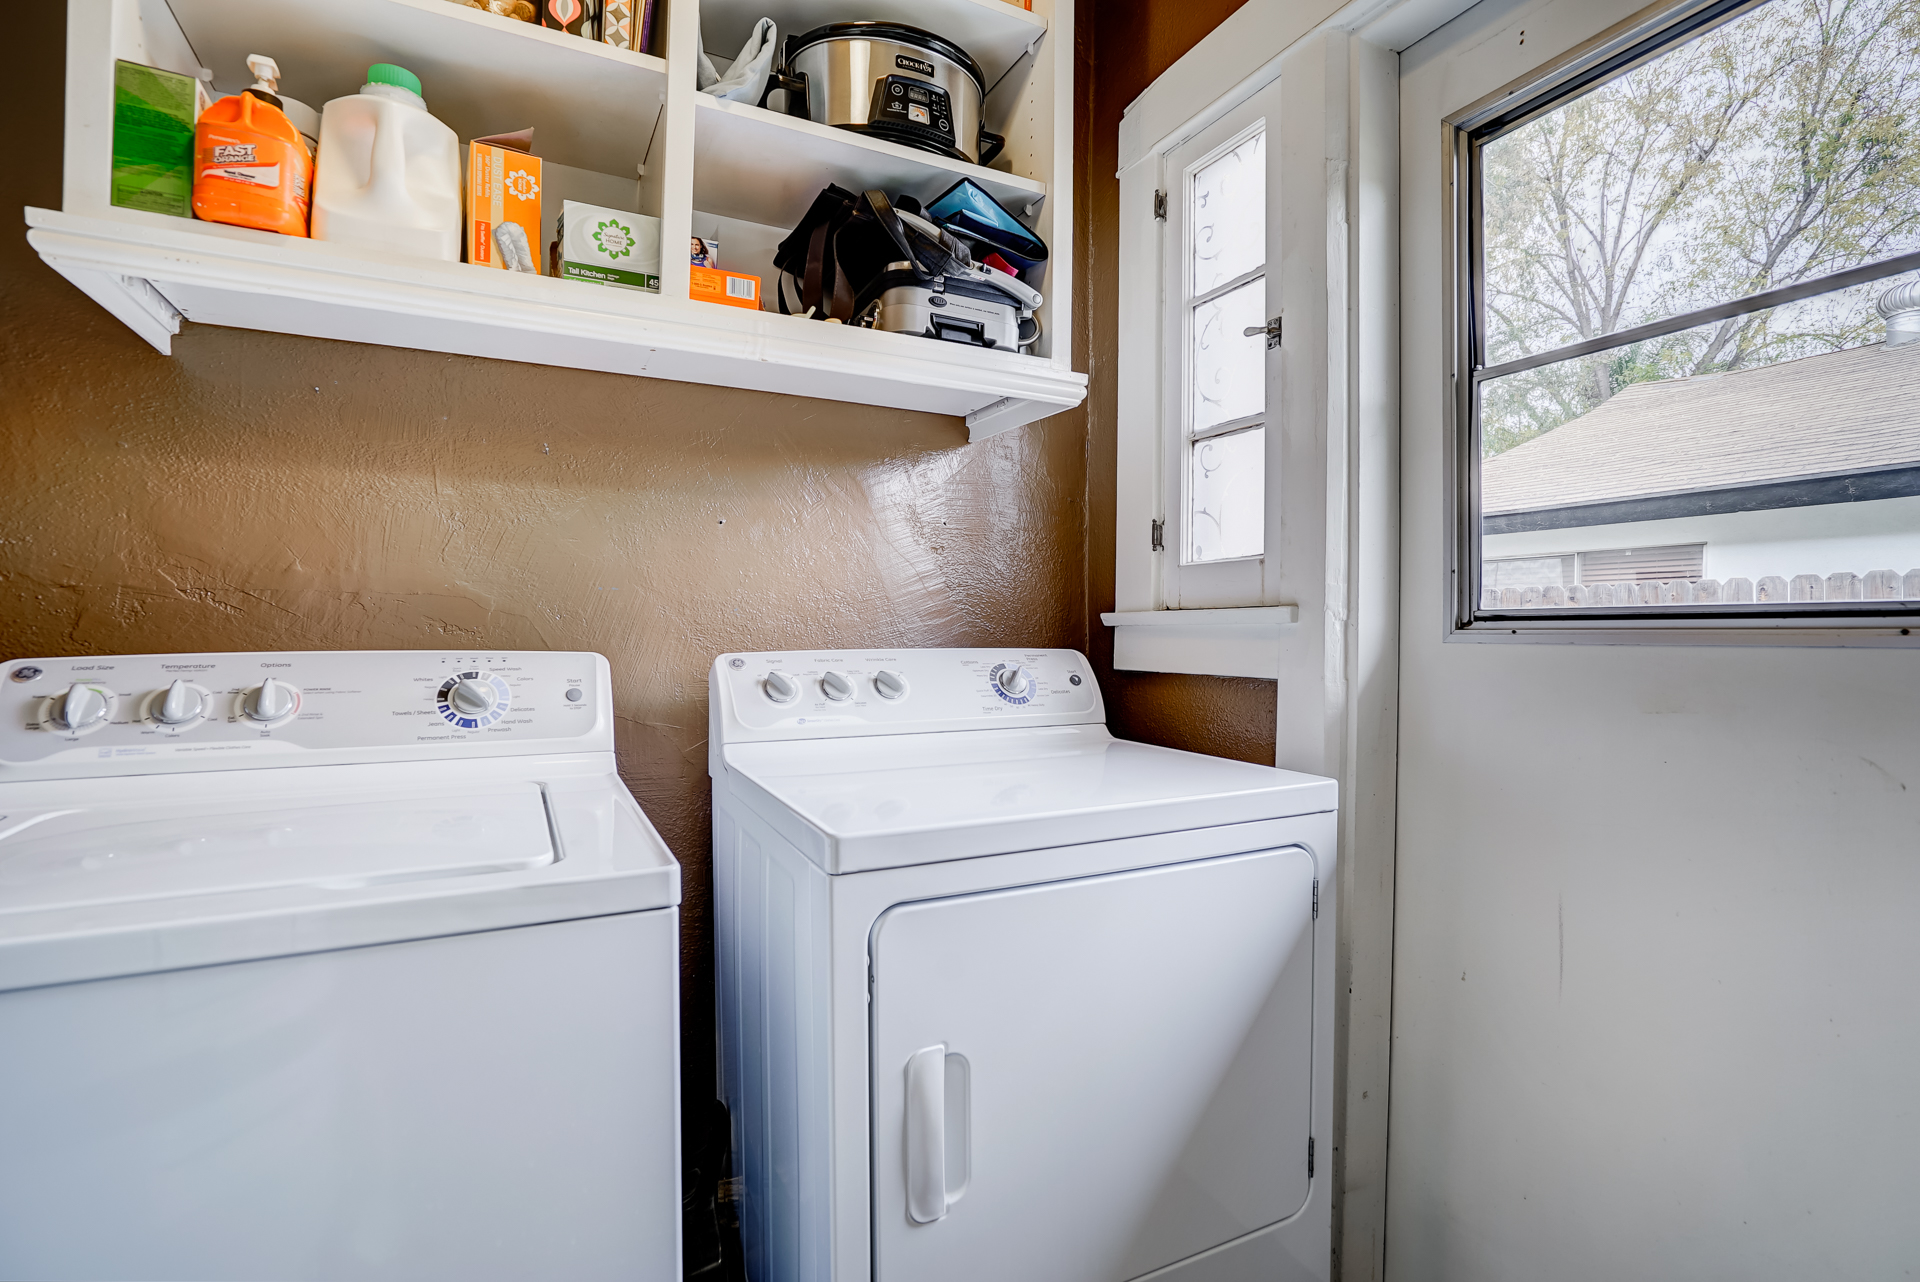 Separate laundry room with convenient shelving, newer water heater, and doorway to side yard.